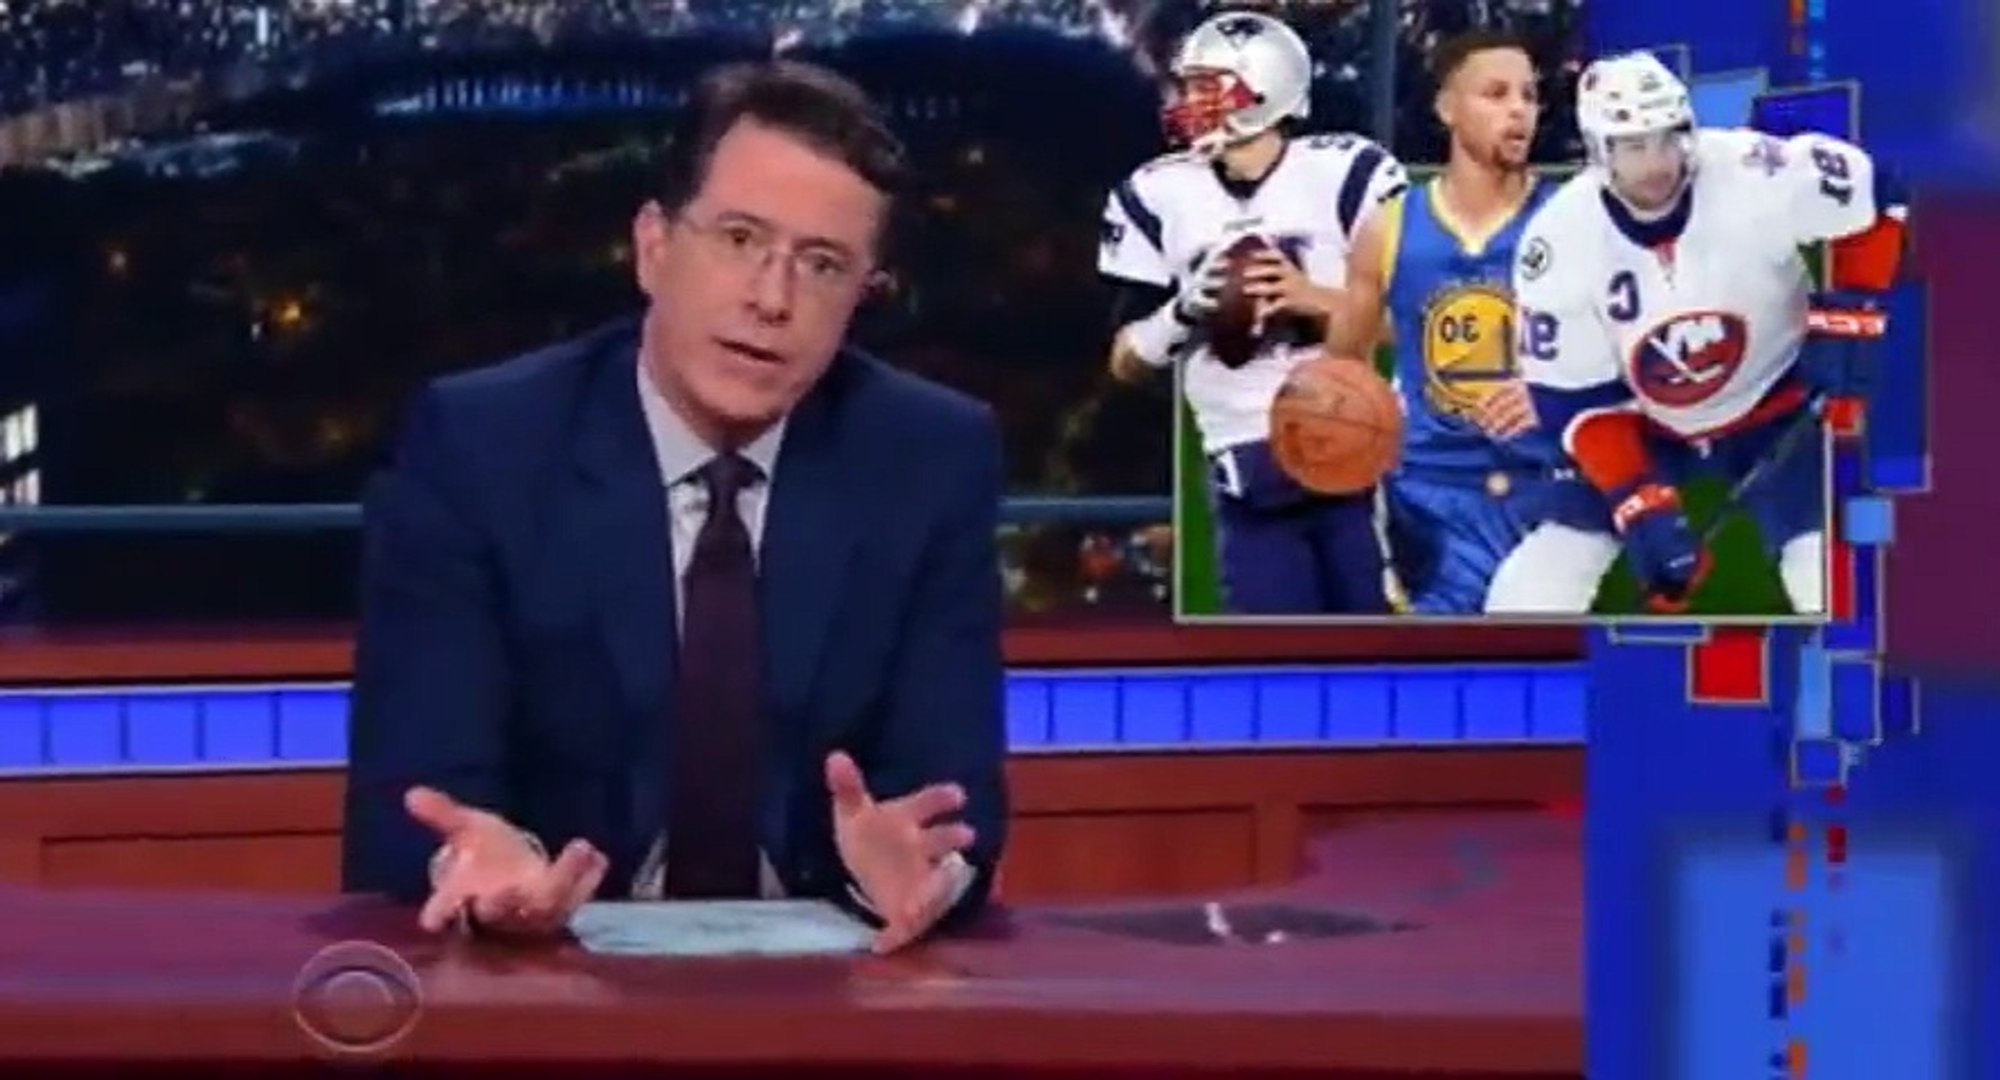 Late Show with Stephen Colbert S01 - Ep49 Michael Caine, Larry Wilmore, Boots HD Watch